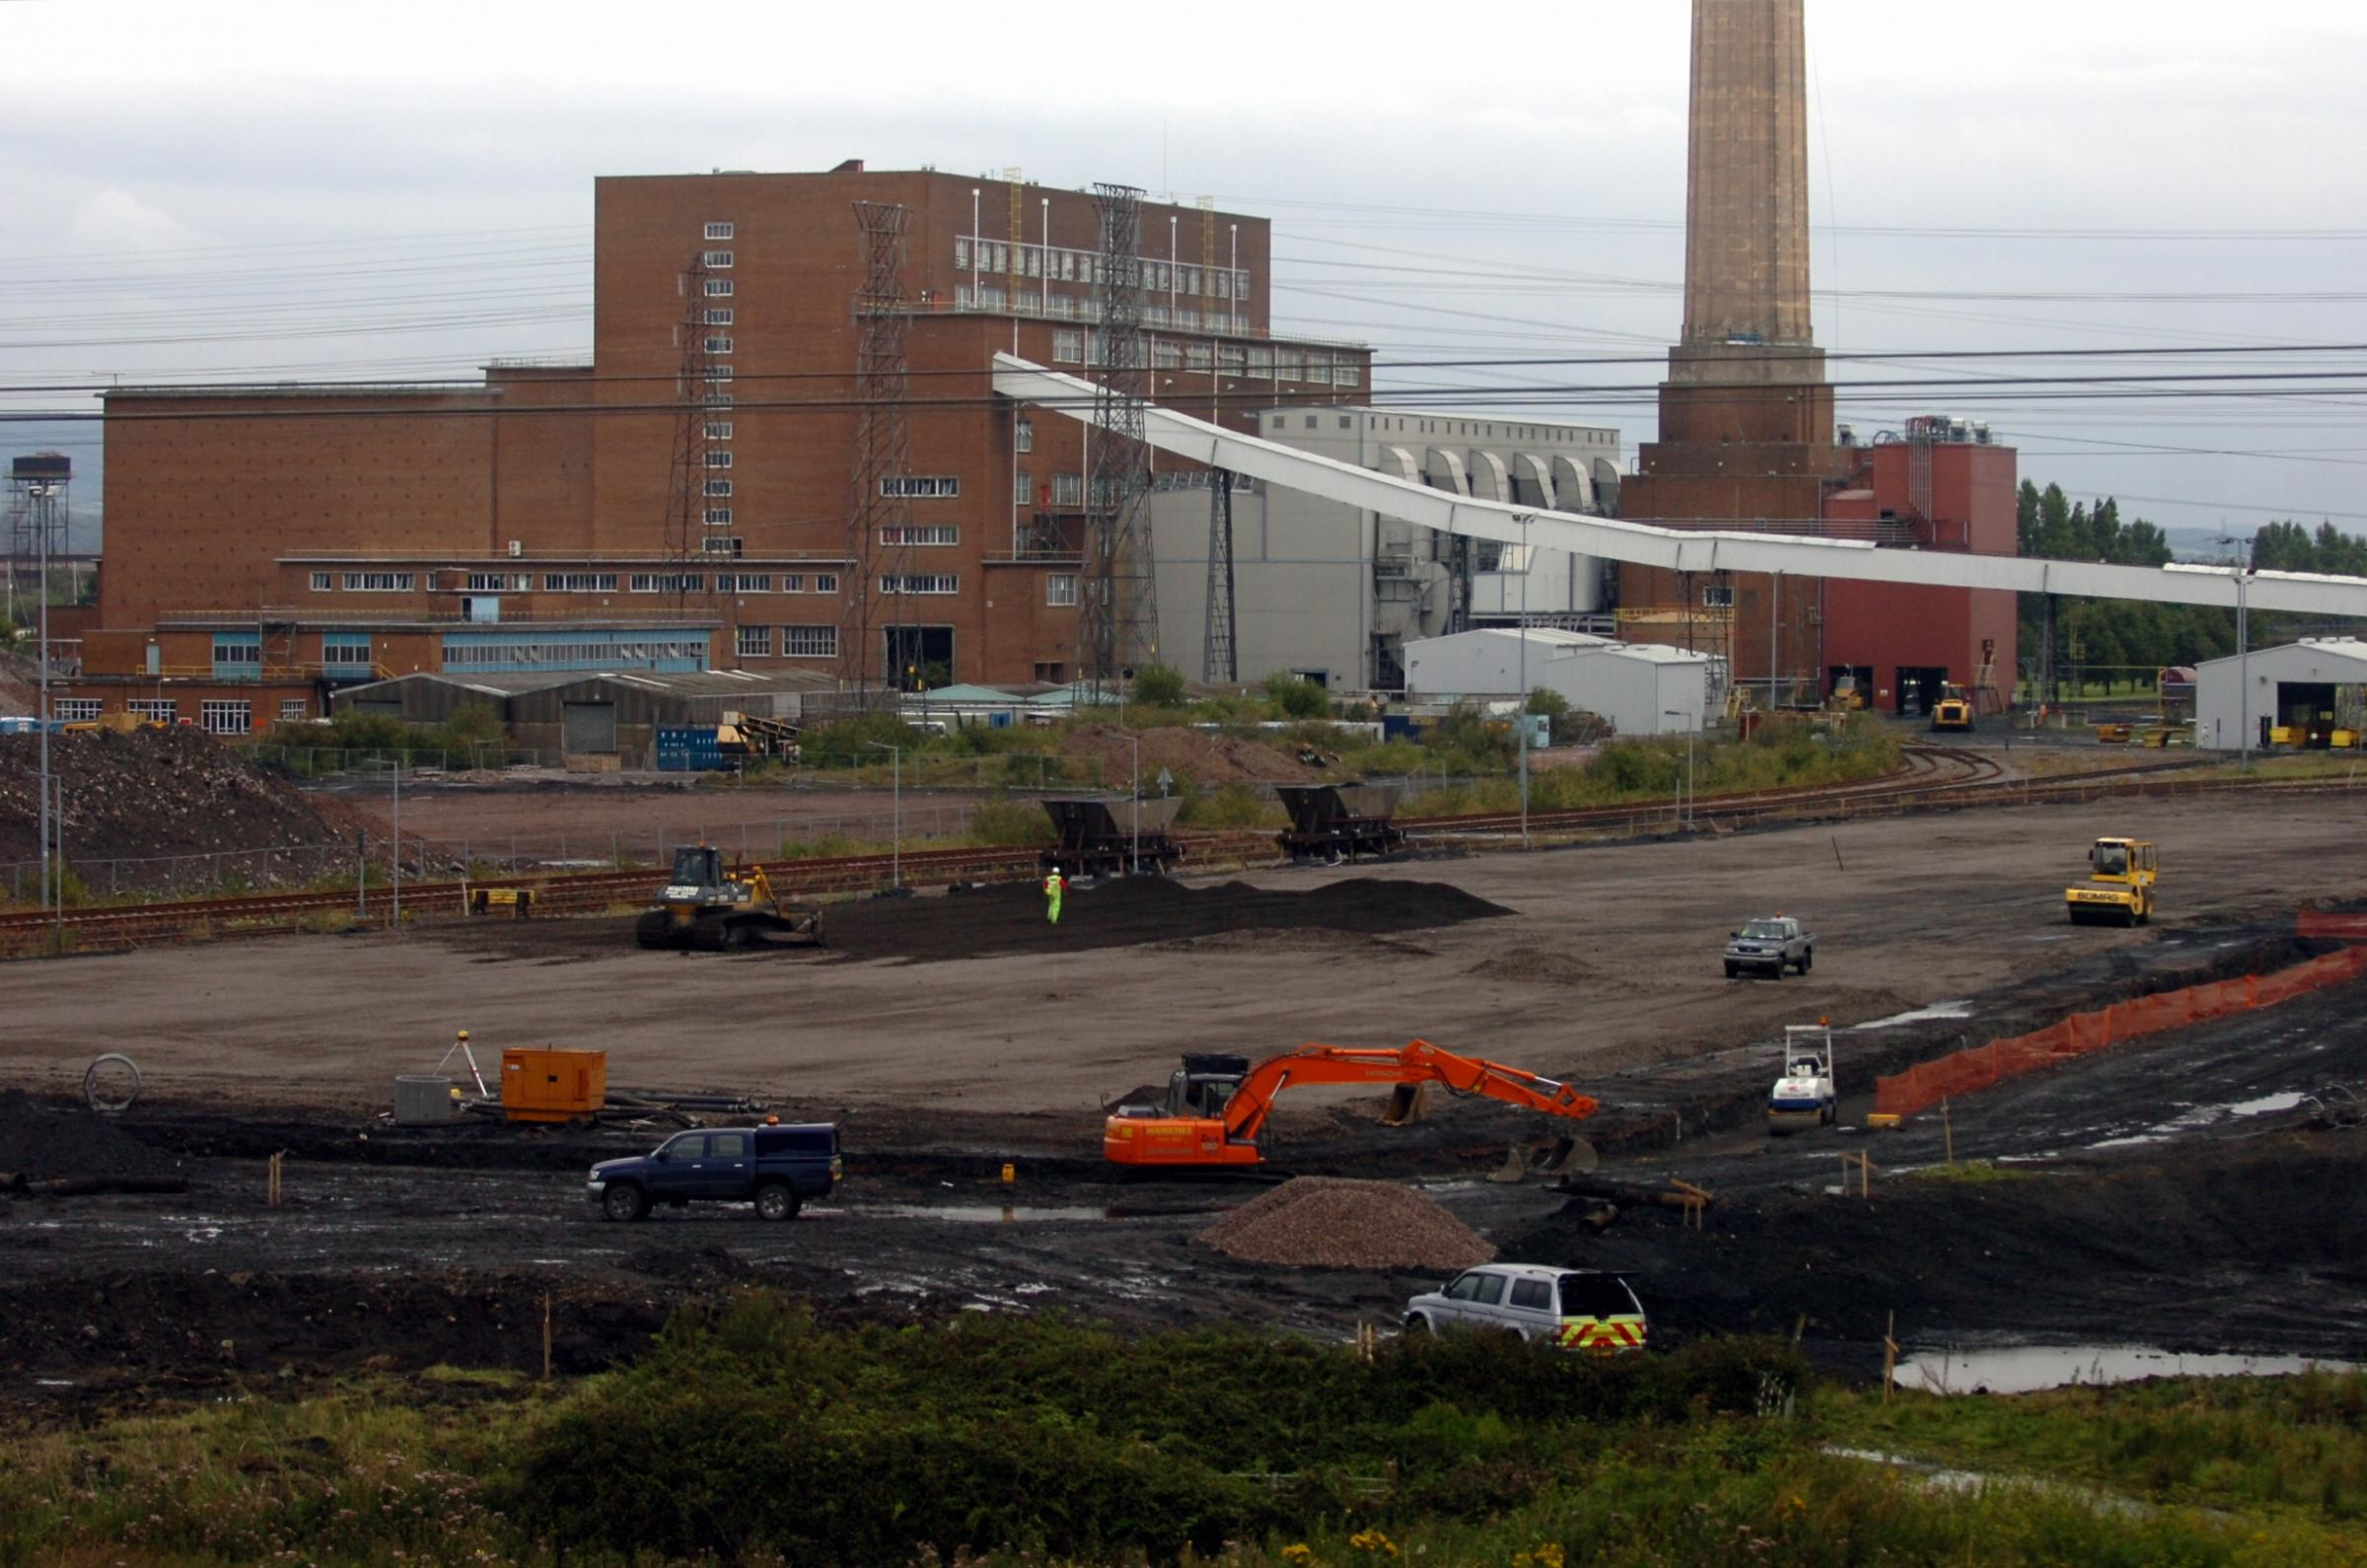 Uskmouth power station stops as sale talks go on